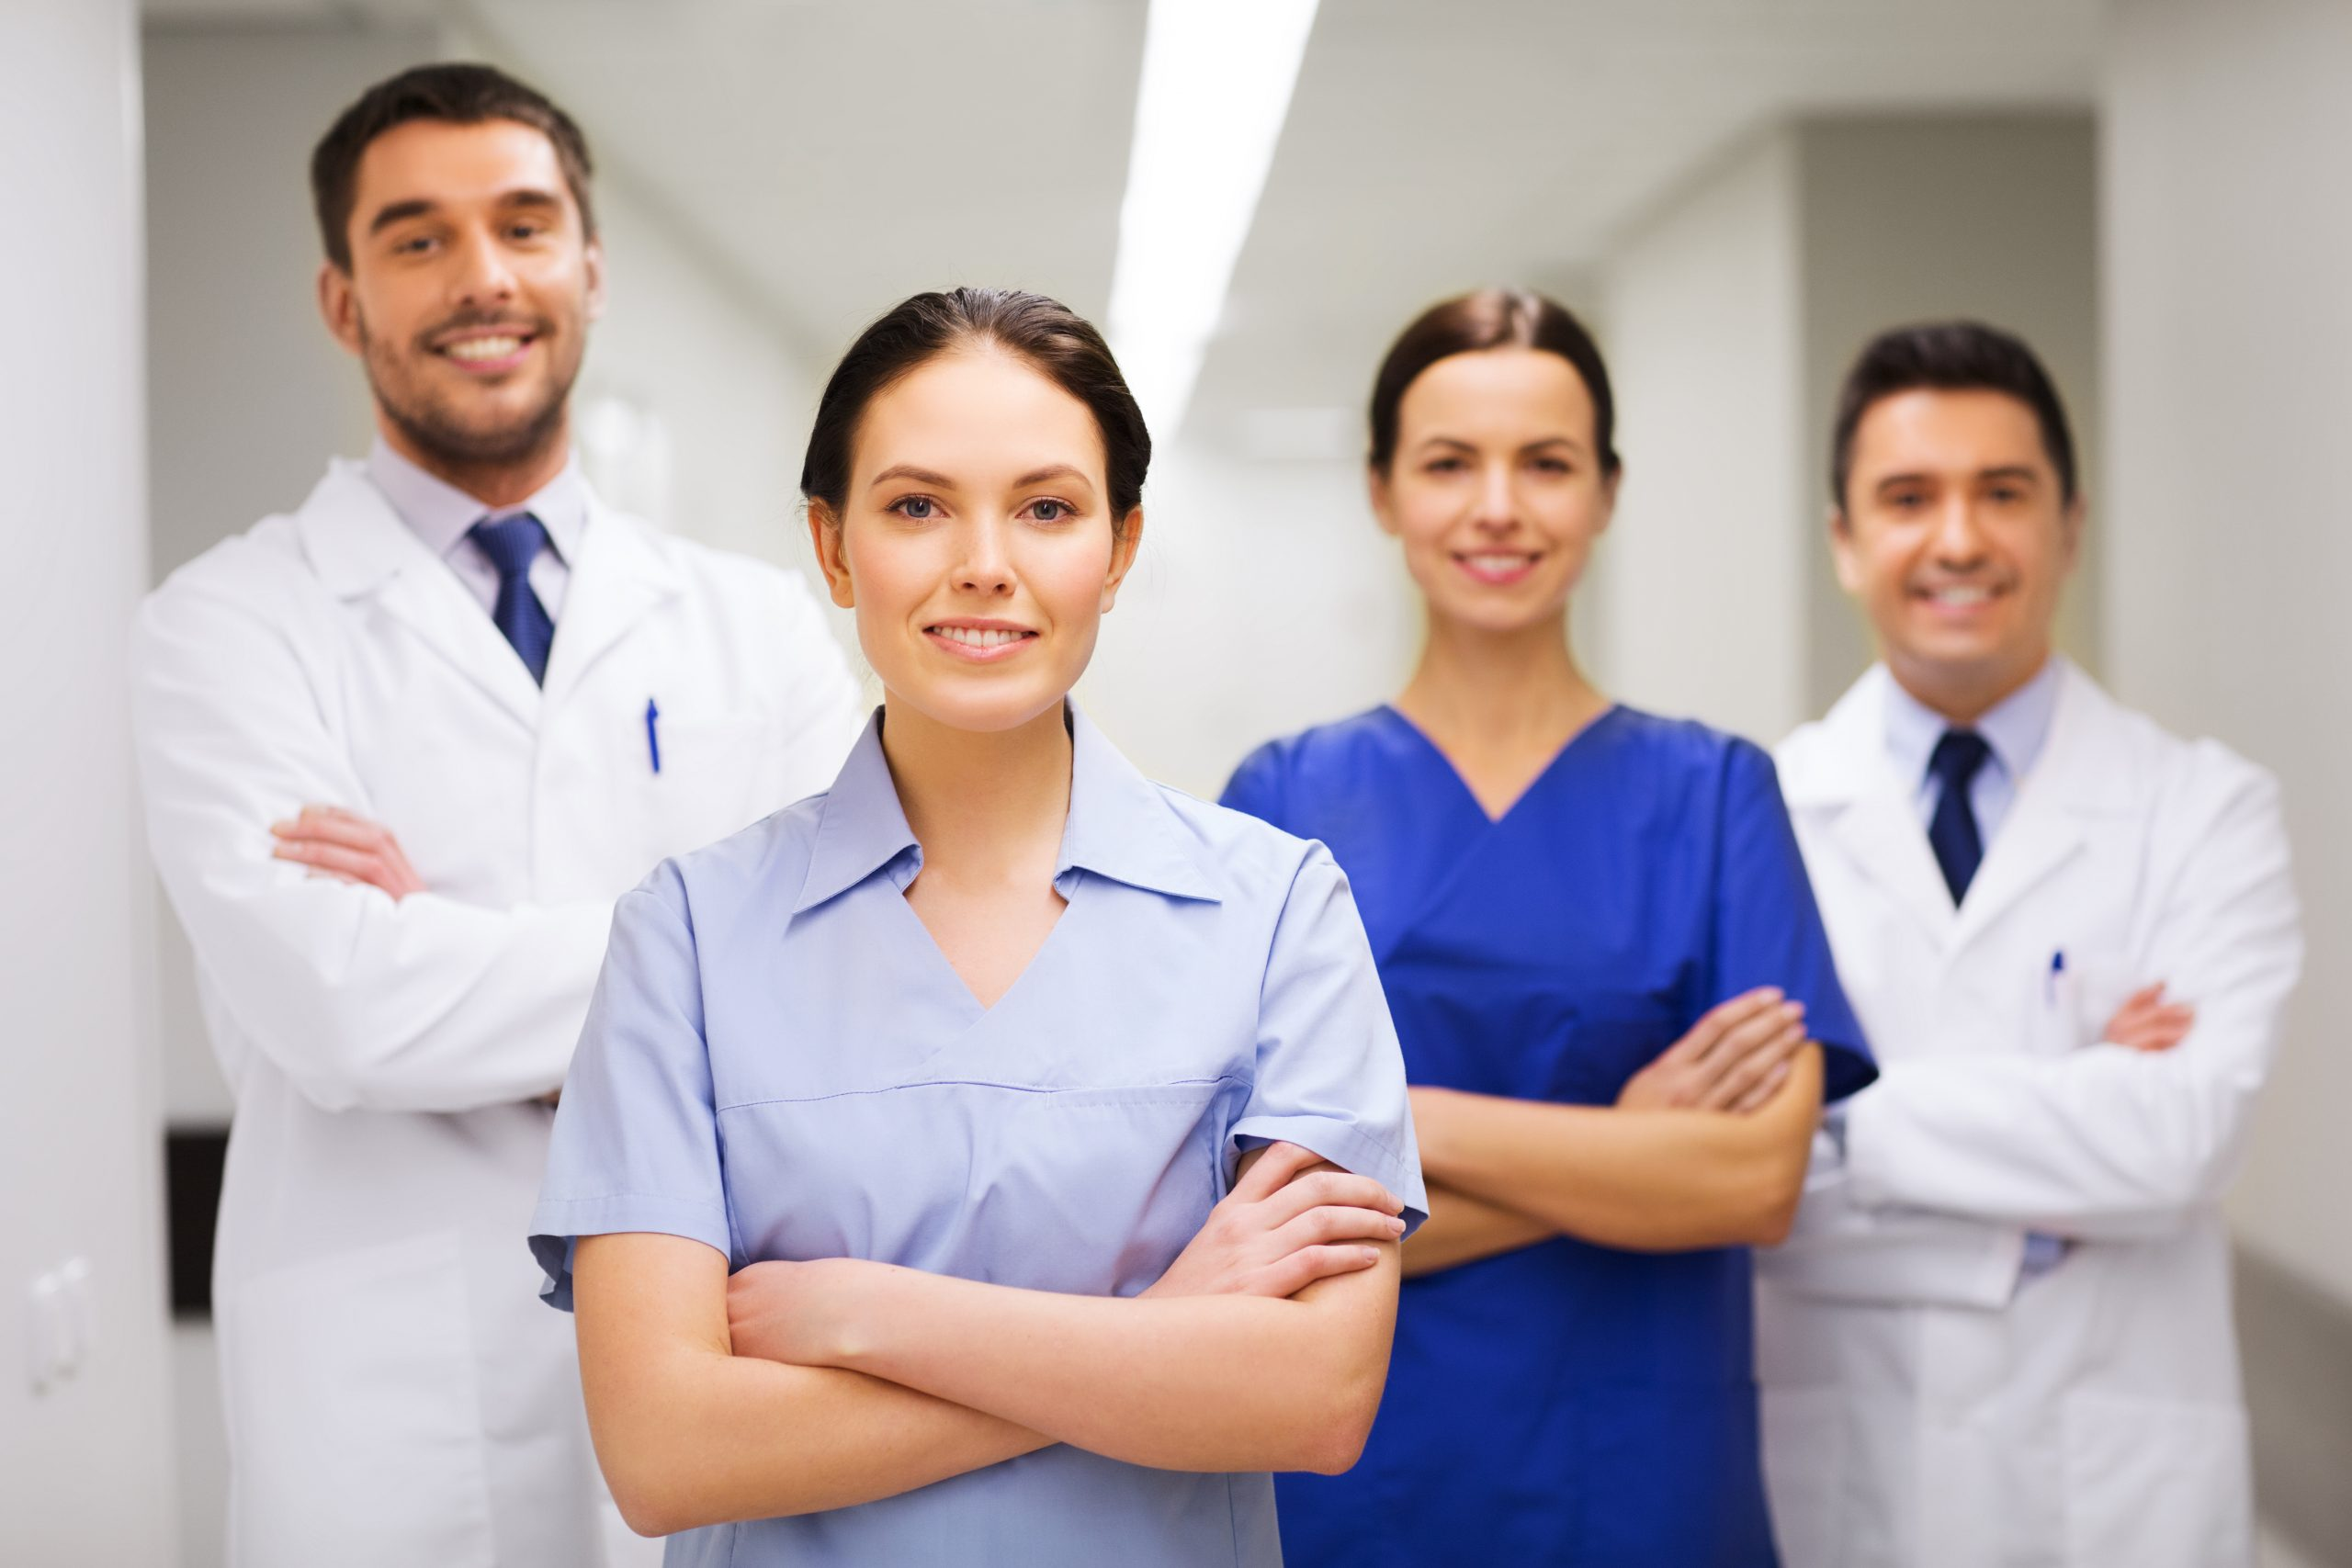 clinic, profession, people, health care and medicine concept - happy group of medics or doctors at hospital corridor